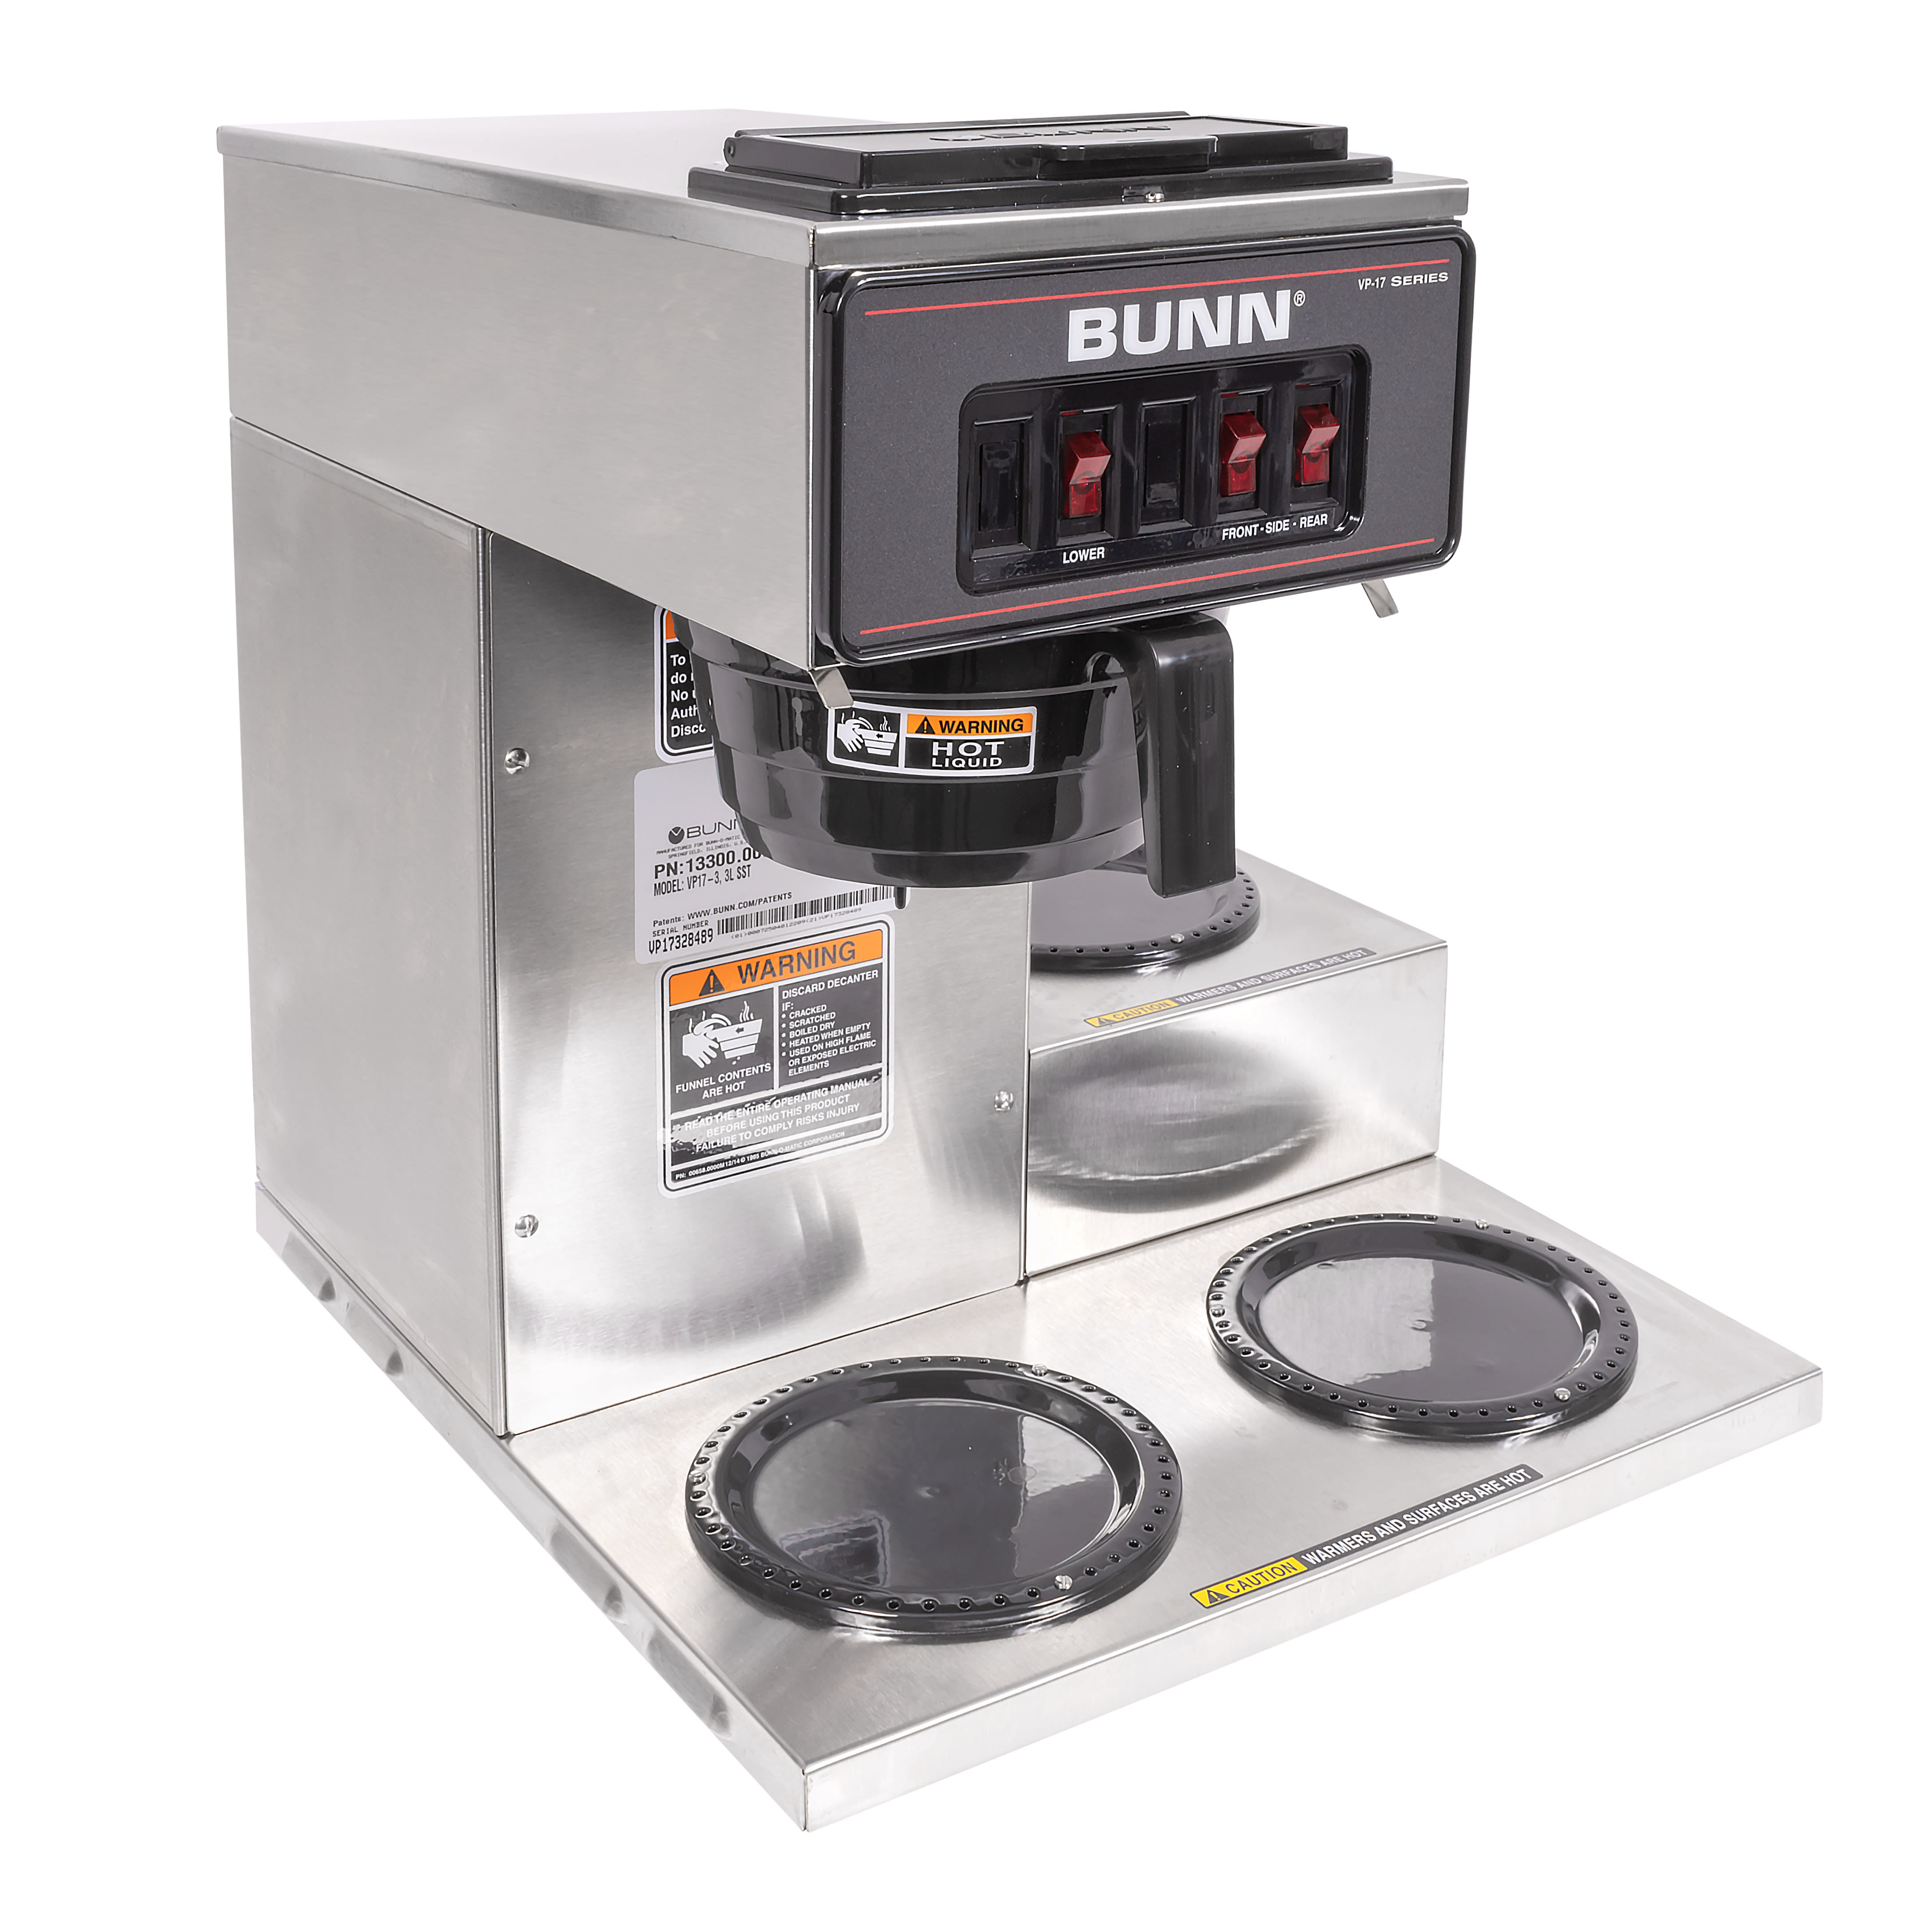 Bunn VP17-3 Pourover Coffee Maker w/ (3) Lower Warmers, 120v (13300.0003)